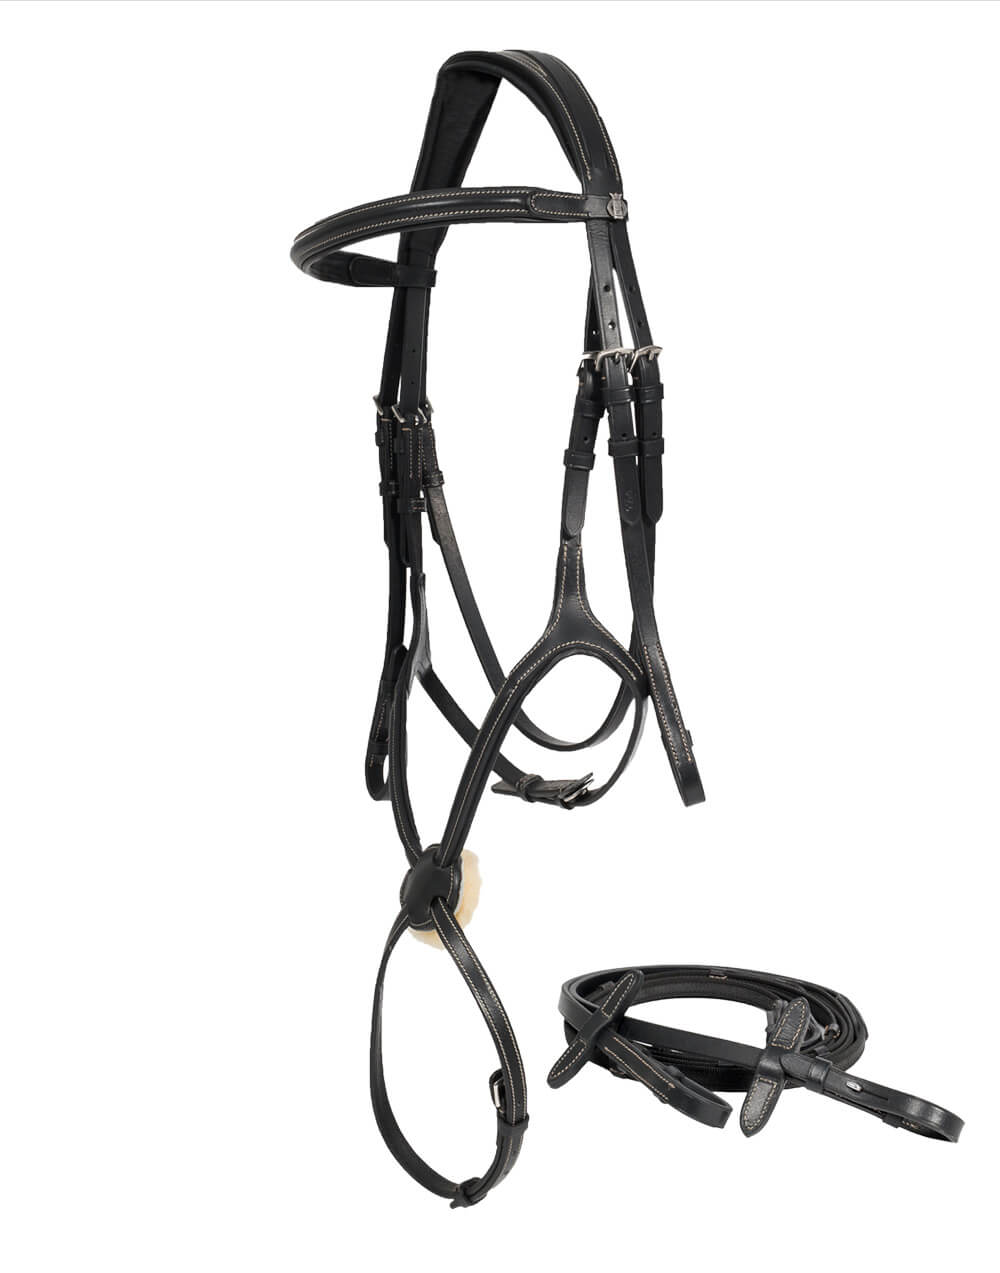 Quality leather bridle with mexican noseband, padded pollpiece and sheepskin padding on the noseband, stitching design. Comes with non slip cleated reins